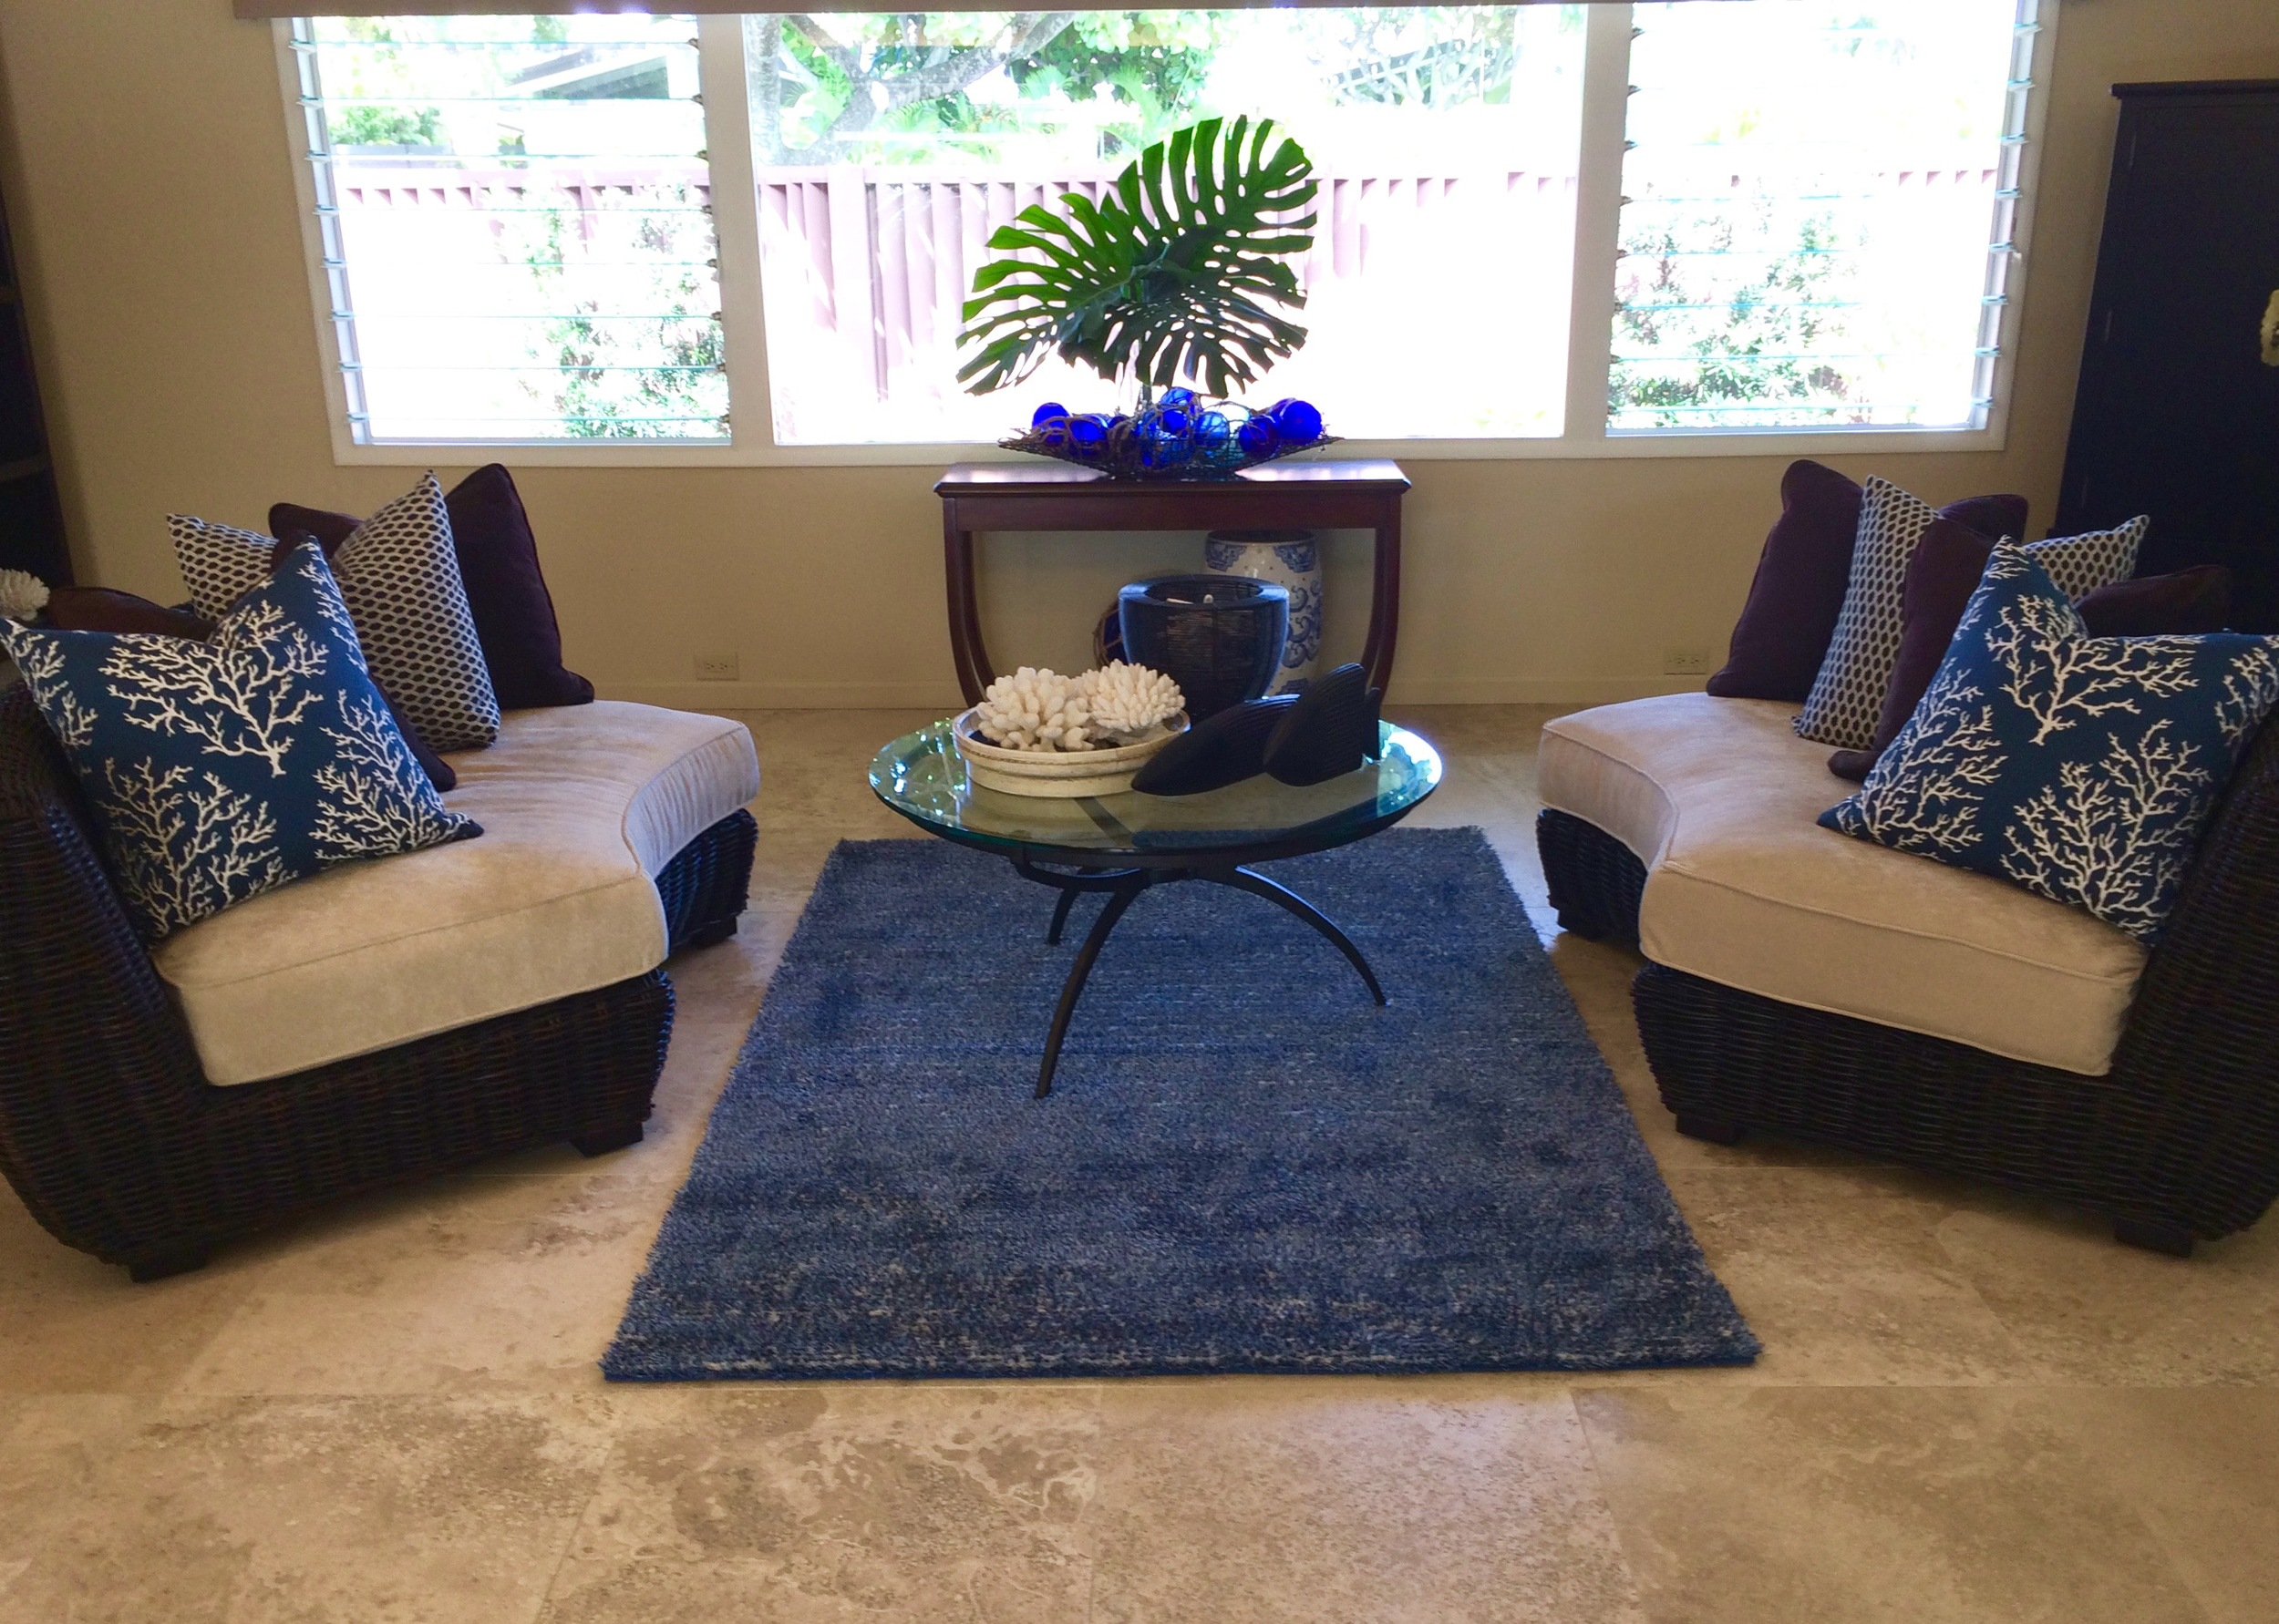 111 Kaiolino Way Luxury Home Staging Hawaii, Home Staging,Best Home Stagers Hawaii, Home Stagers in Hawaii, Stagers Hawaii, Home Stager Hawaii, Luxury Home Stager Hawaii